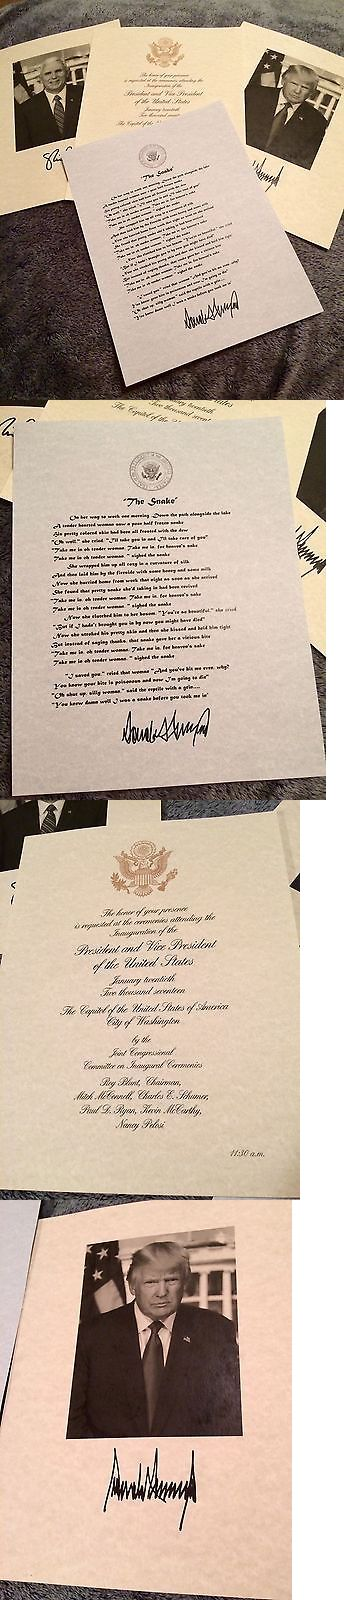 donald trump: Official Donald Trump The Snake Poem 2017 Inauguration Invitation And Photo Signed -> BUY IT NOW ONLY: $10 on eBay!